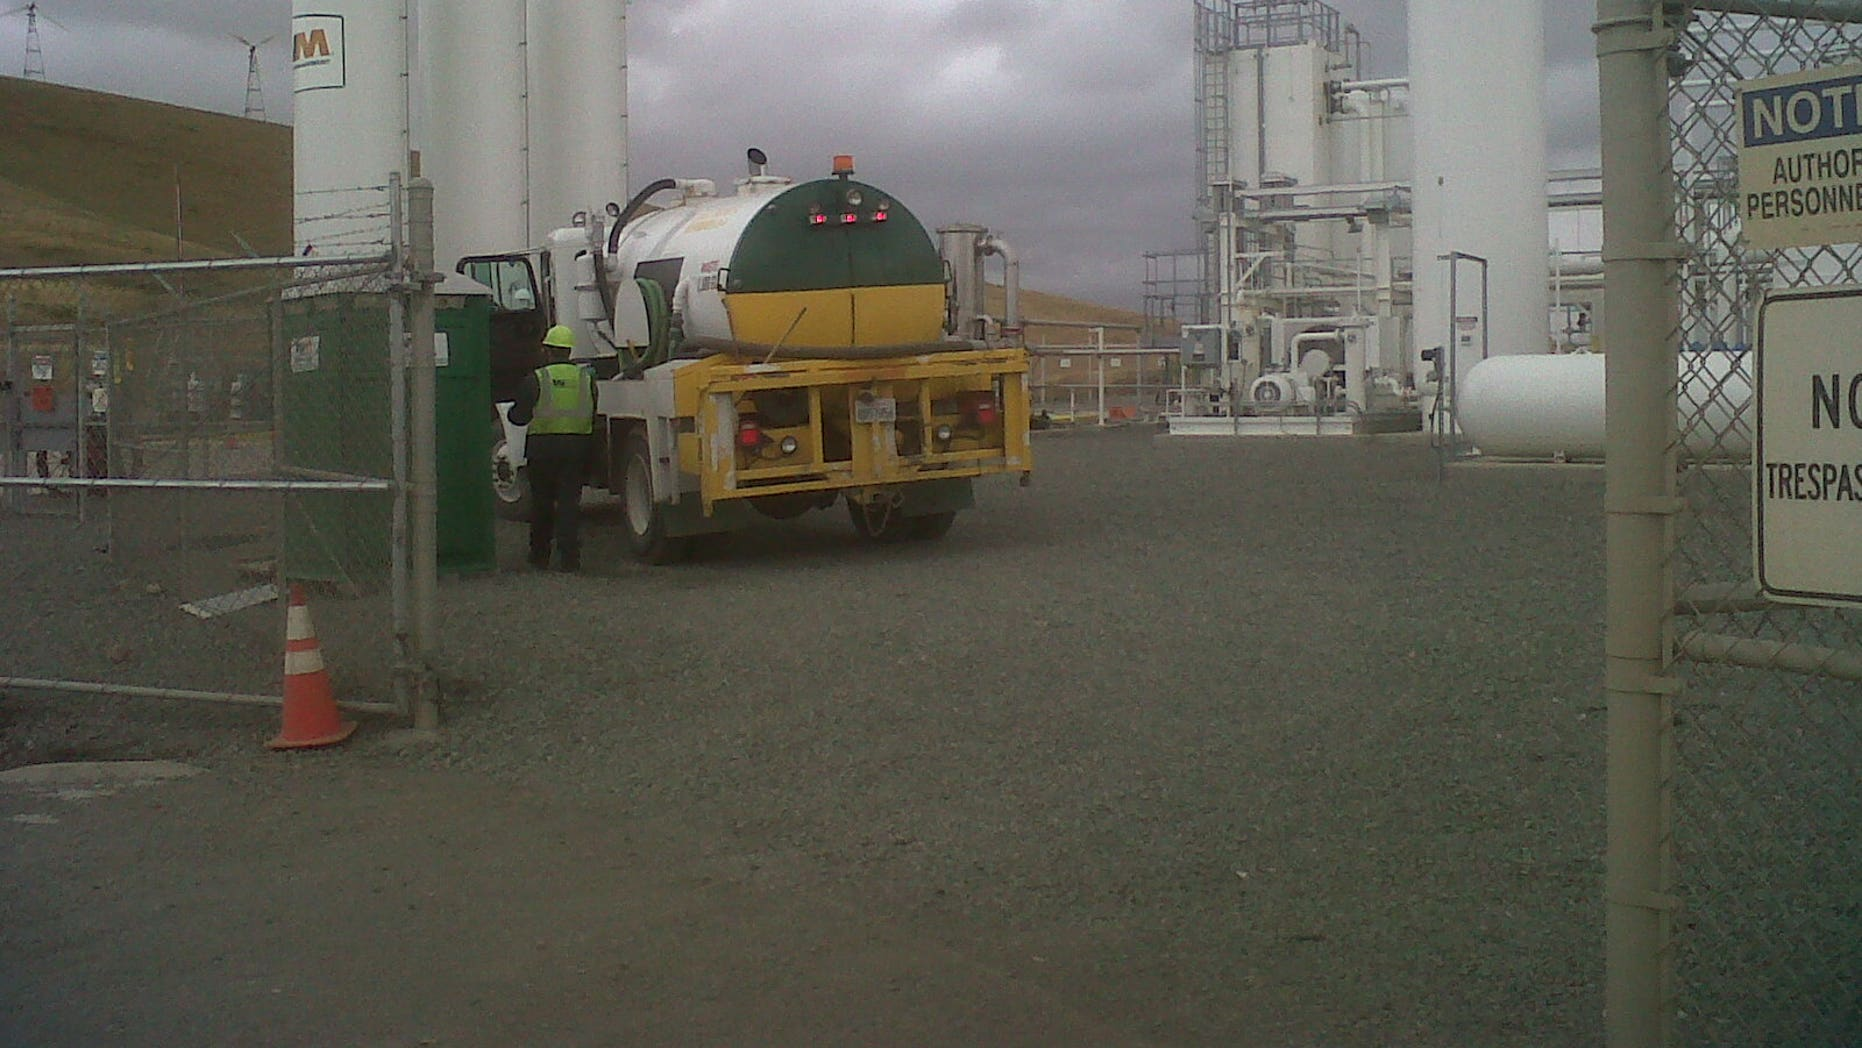 The Altamont Landfill LNG plant in Livermore, Calif. (Fox News)